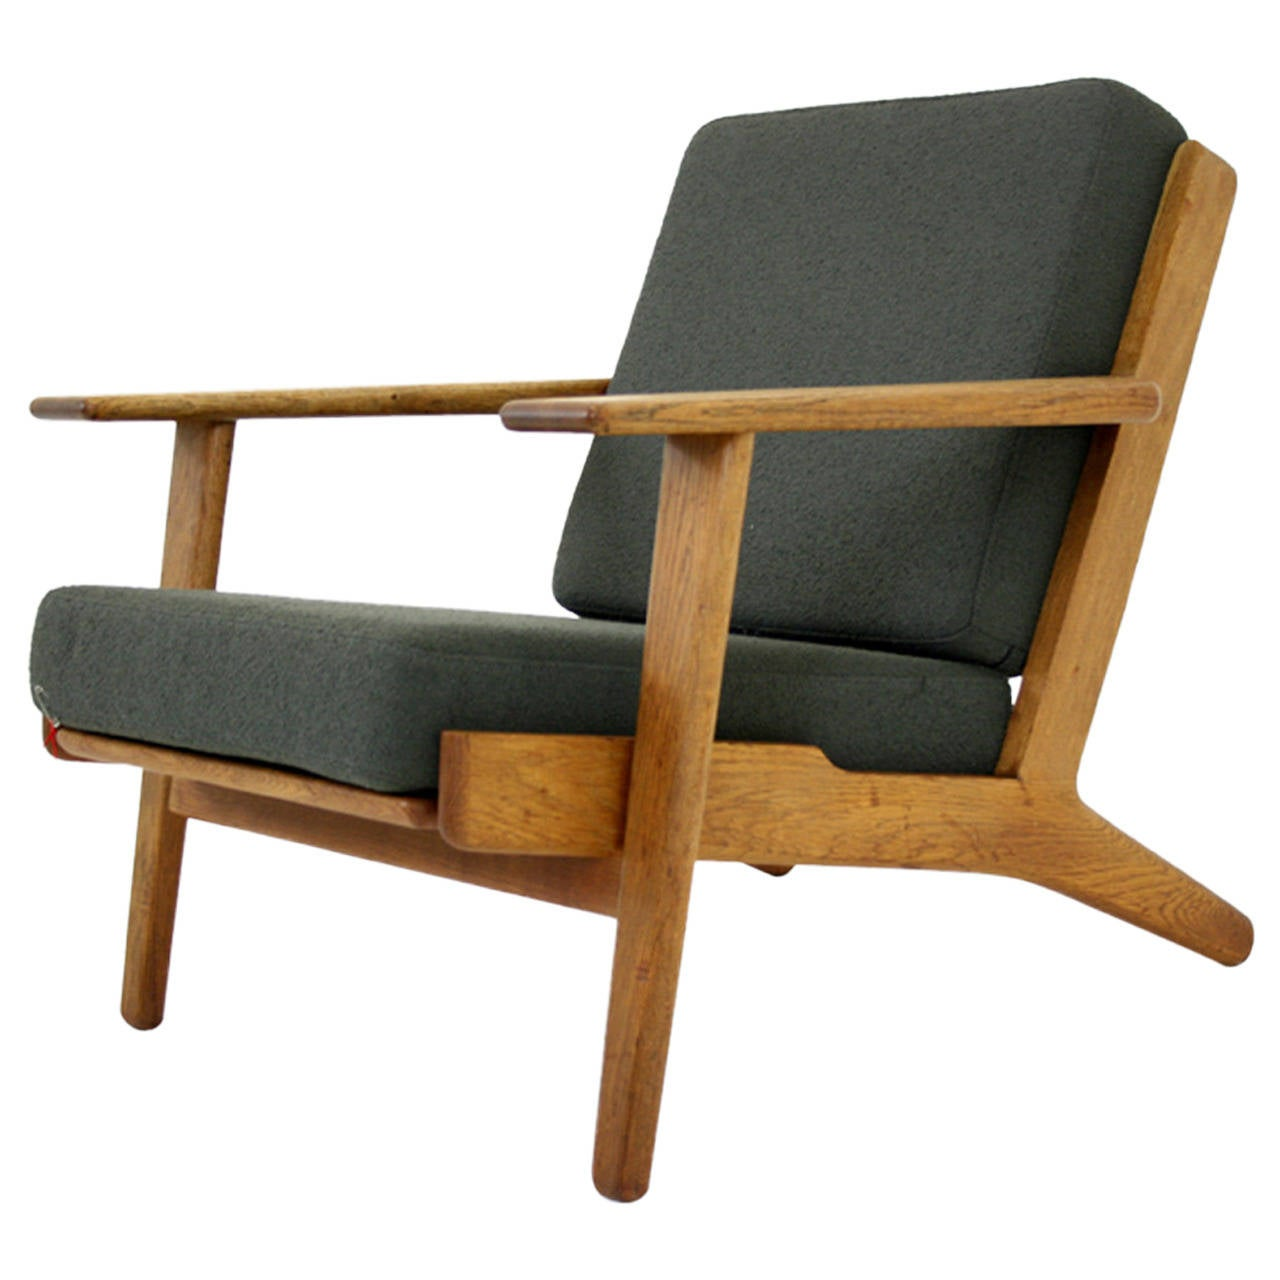 Danish Mid-Century Oak GE-290 Lounge Chair by Hans Wegner for Getama For Sale